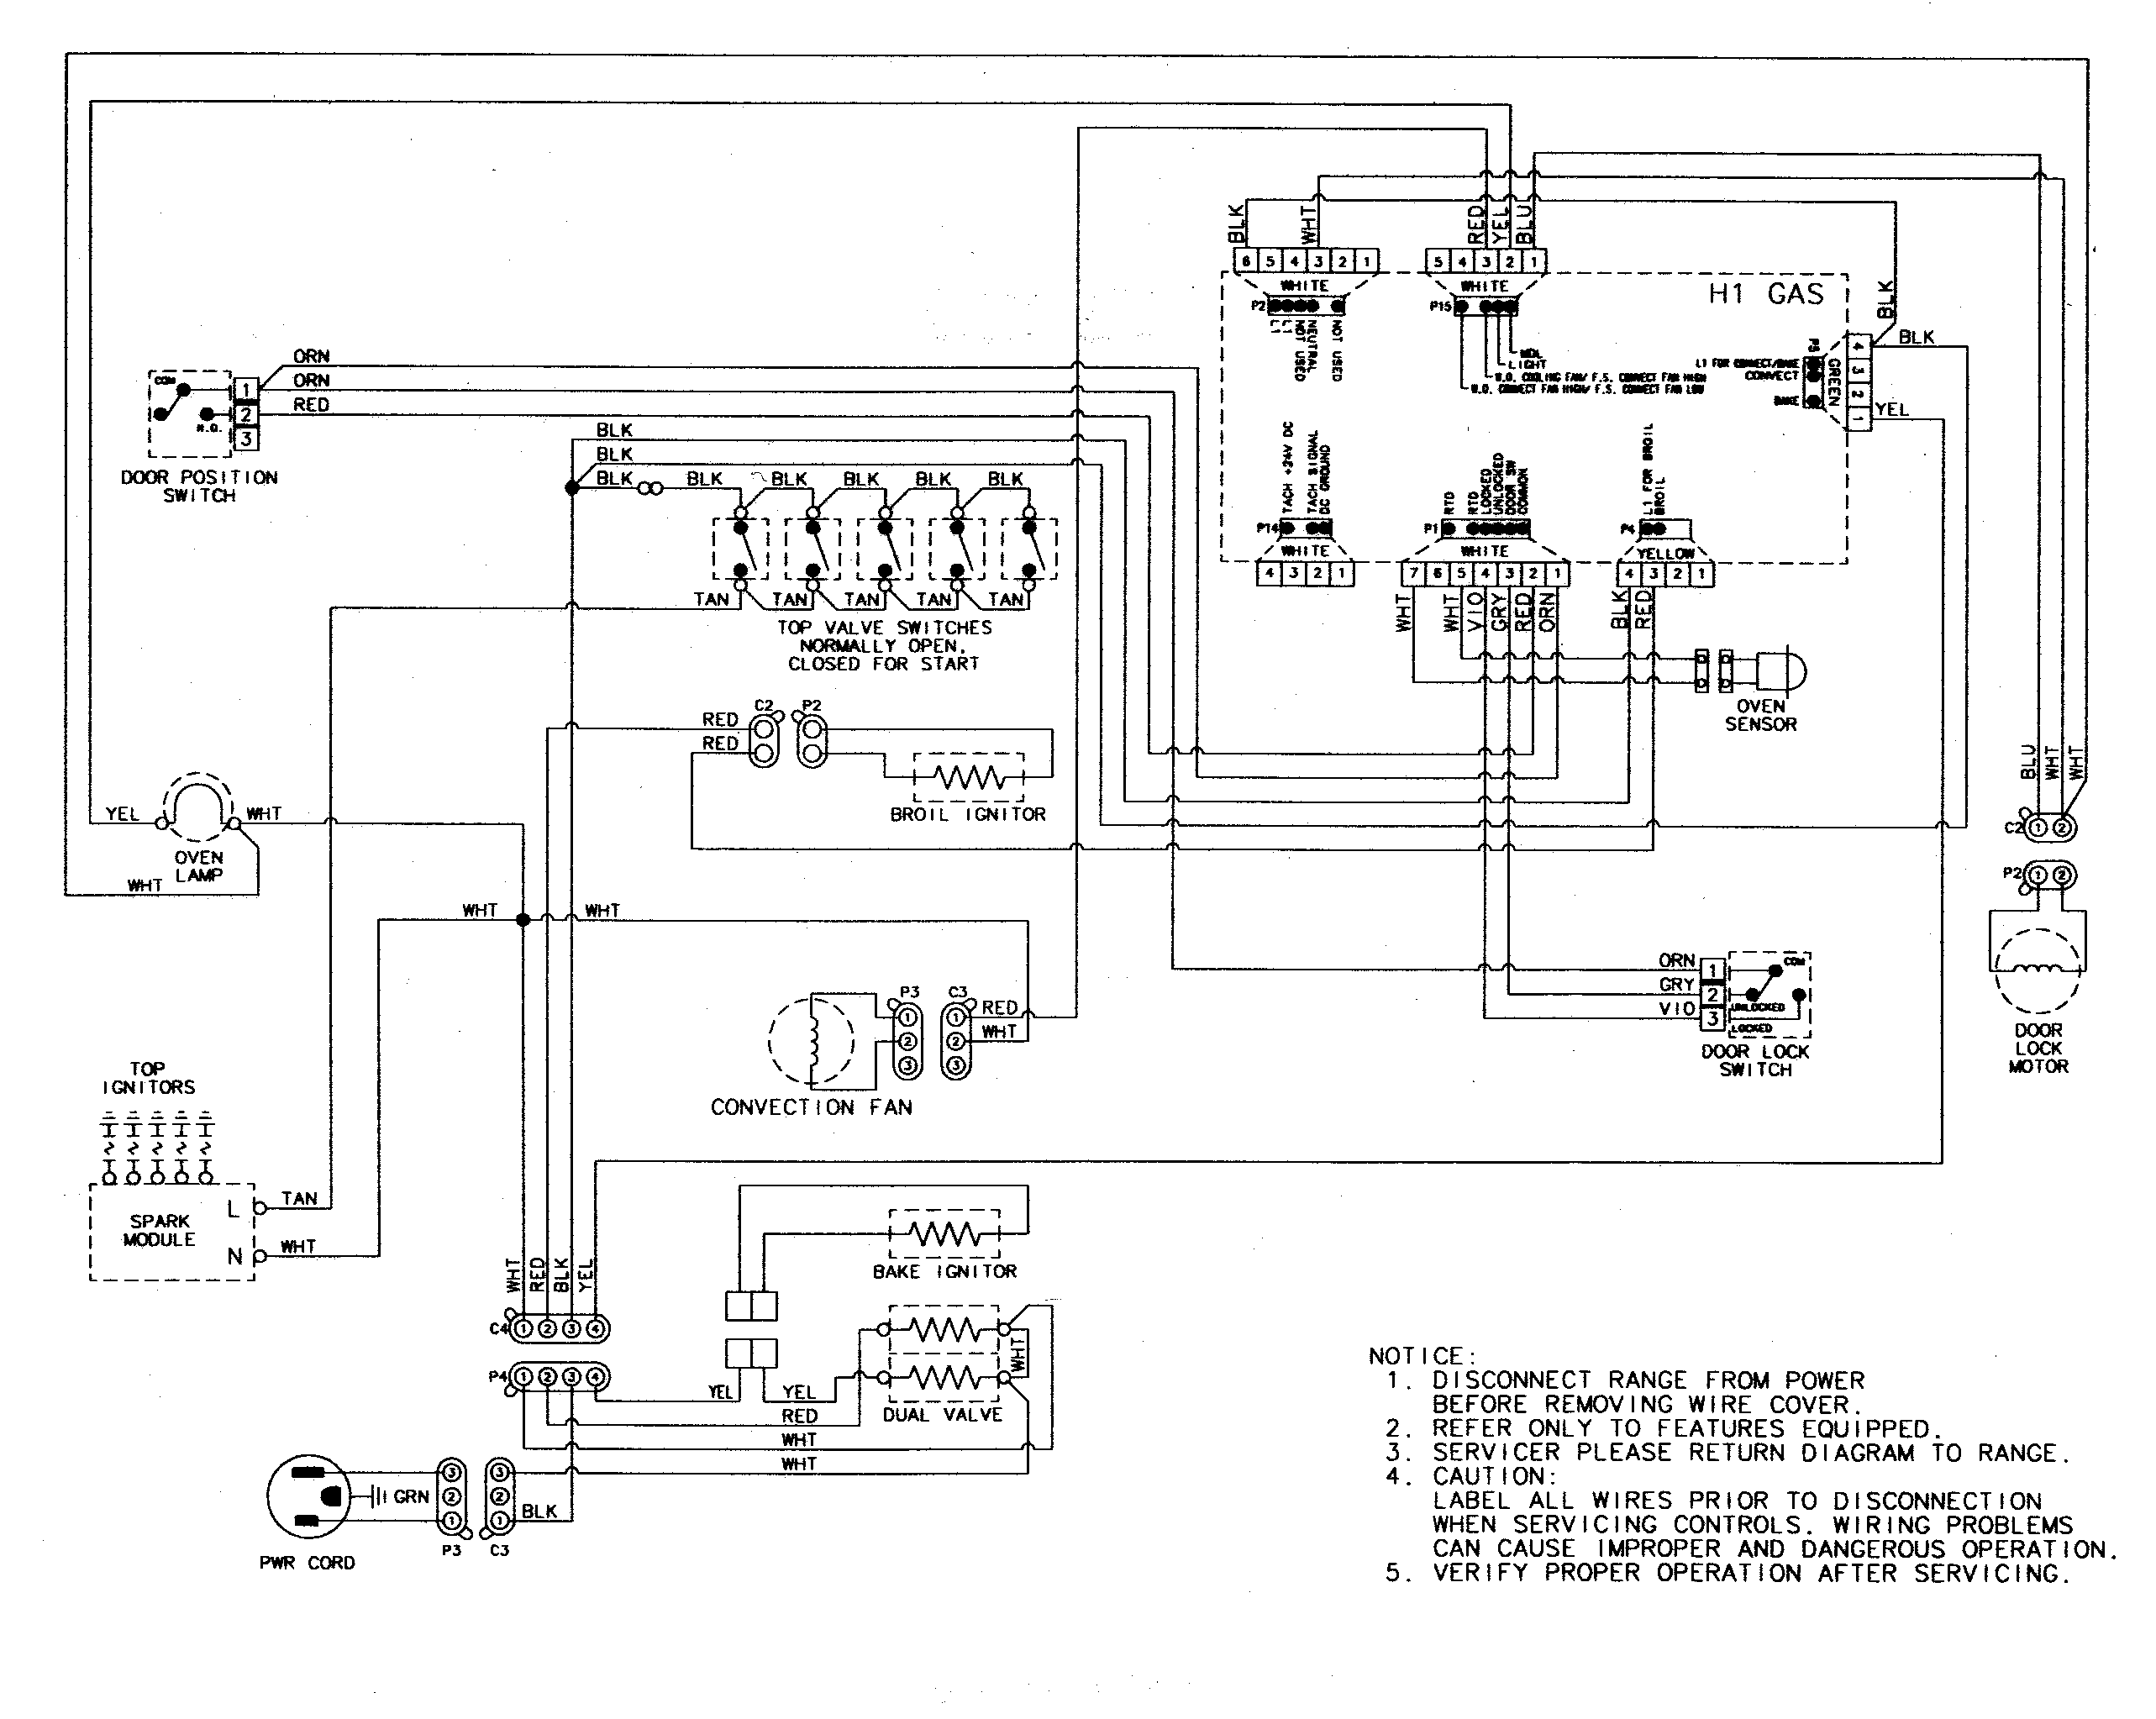 Ge jkp1 oven wiring diagram wiring diagram whirlpool range wiring diagram wiring diagrams instructions rh ww2 ww w freeautoresponder co ge appliance wiring diagrams electric oven wiring diagram swarovskicordoba Choice Image